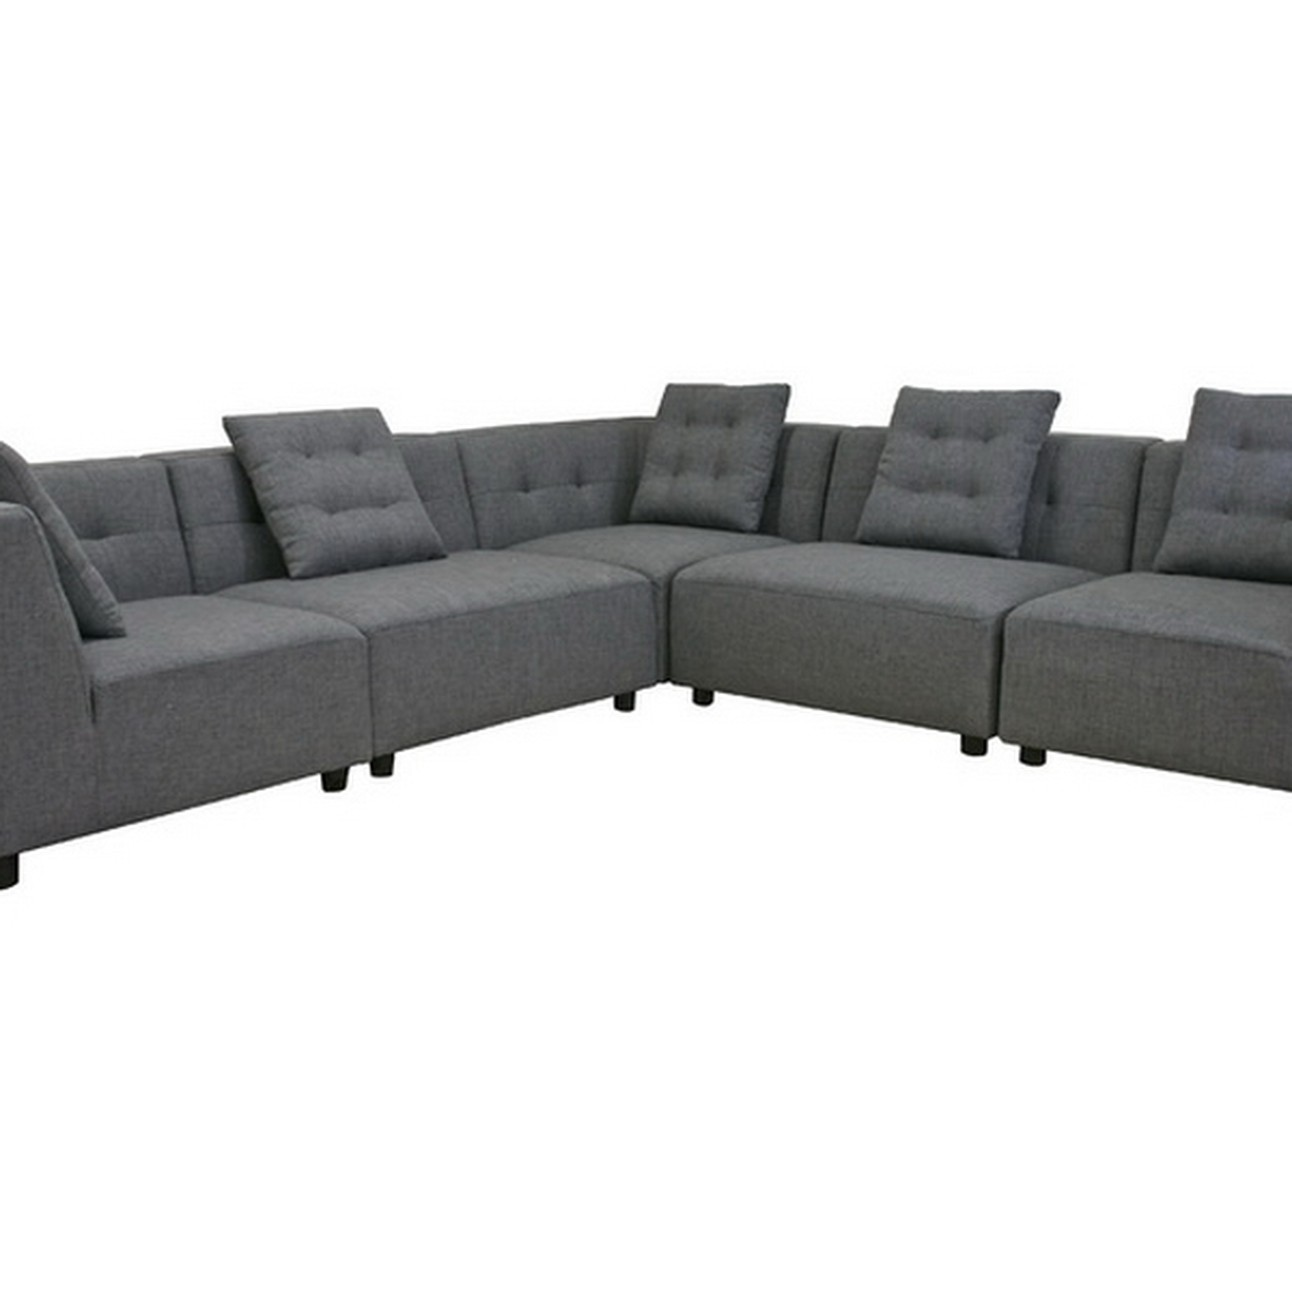 Swell Alcoa Gray Fabric Modular Modern Sectional Sofa Caraccident5 Cool Chair Designs And Ideas Caraccident5Info